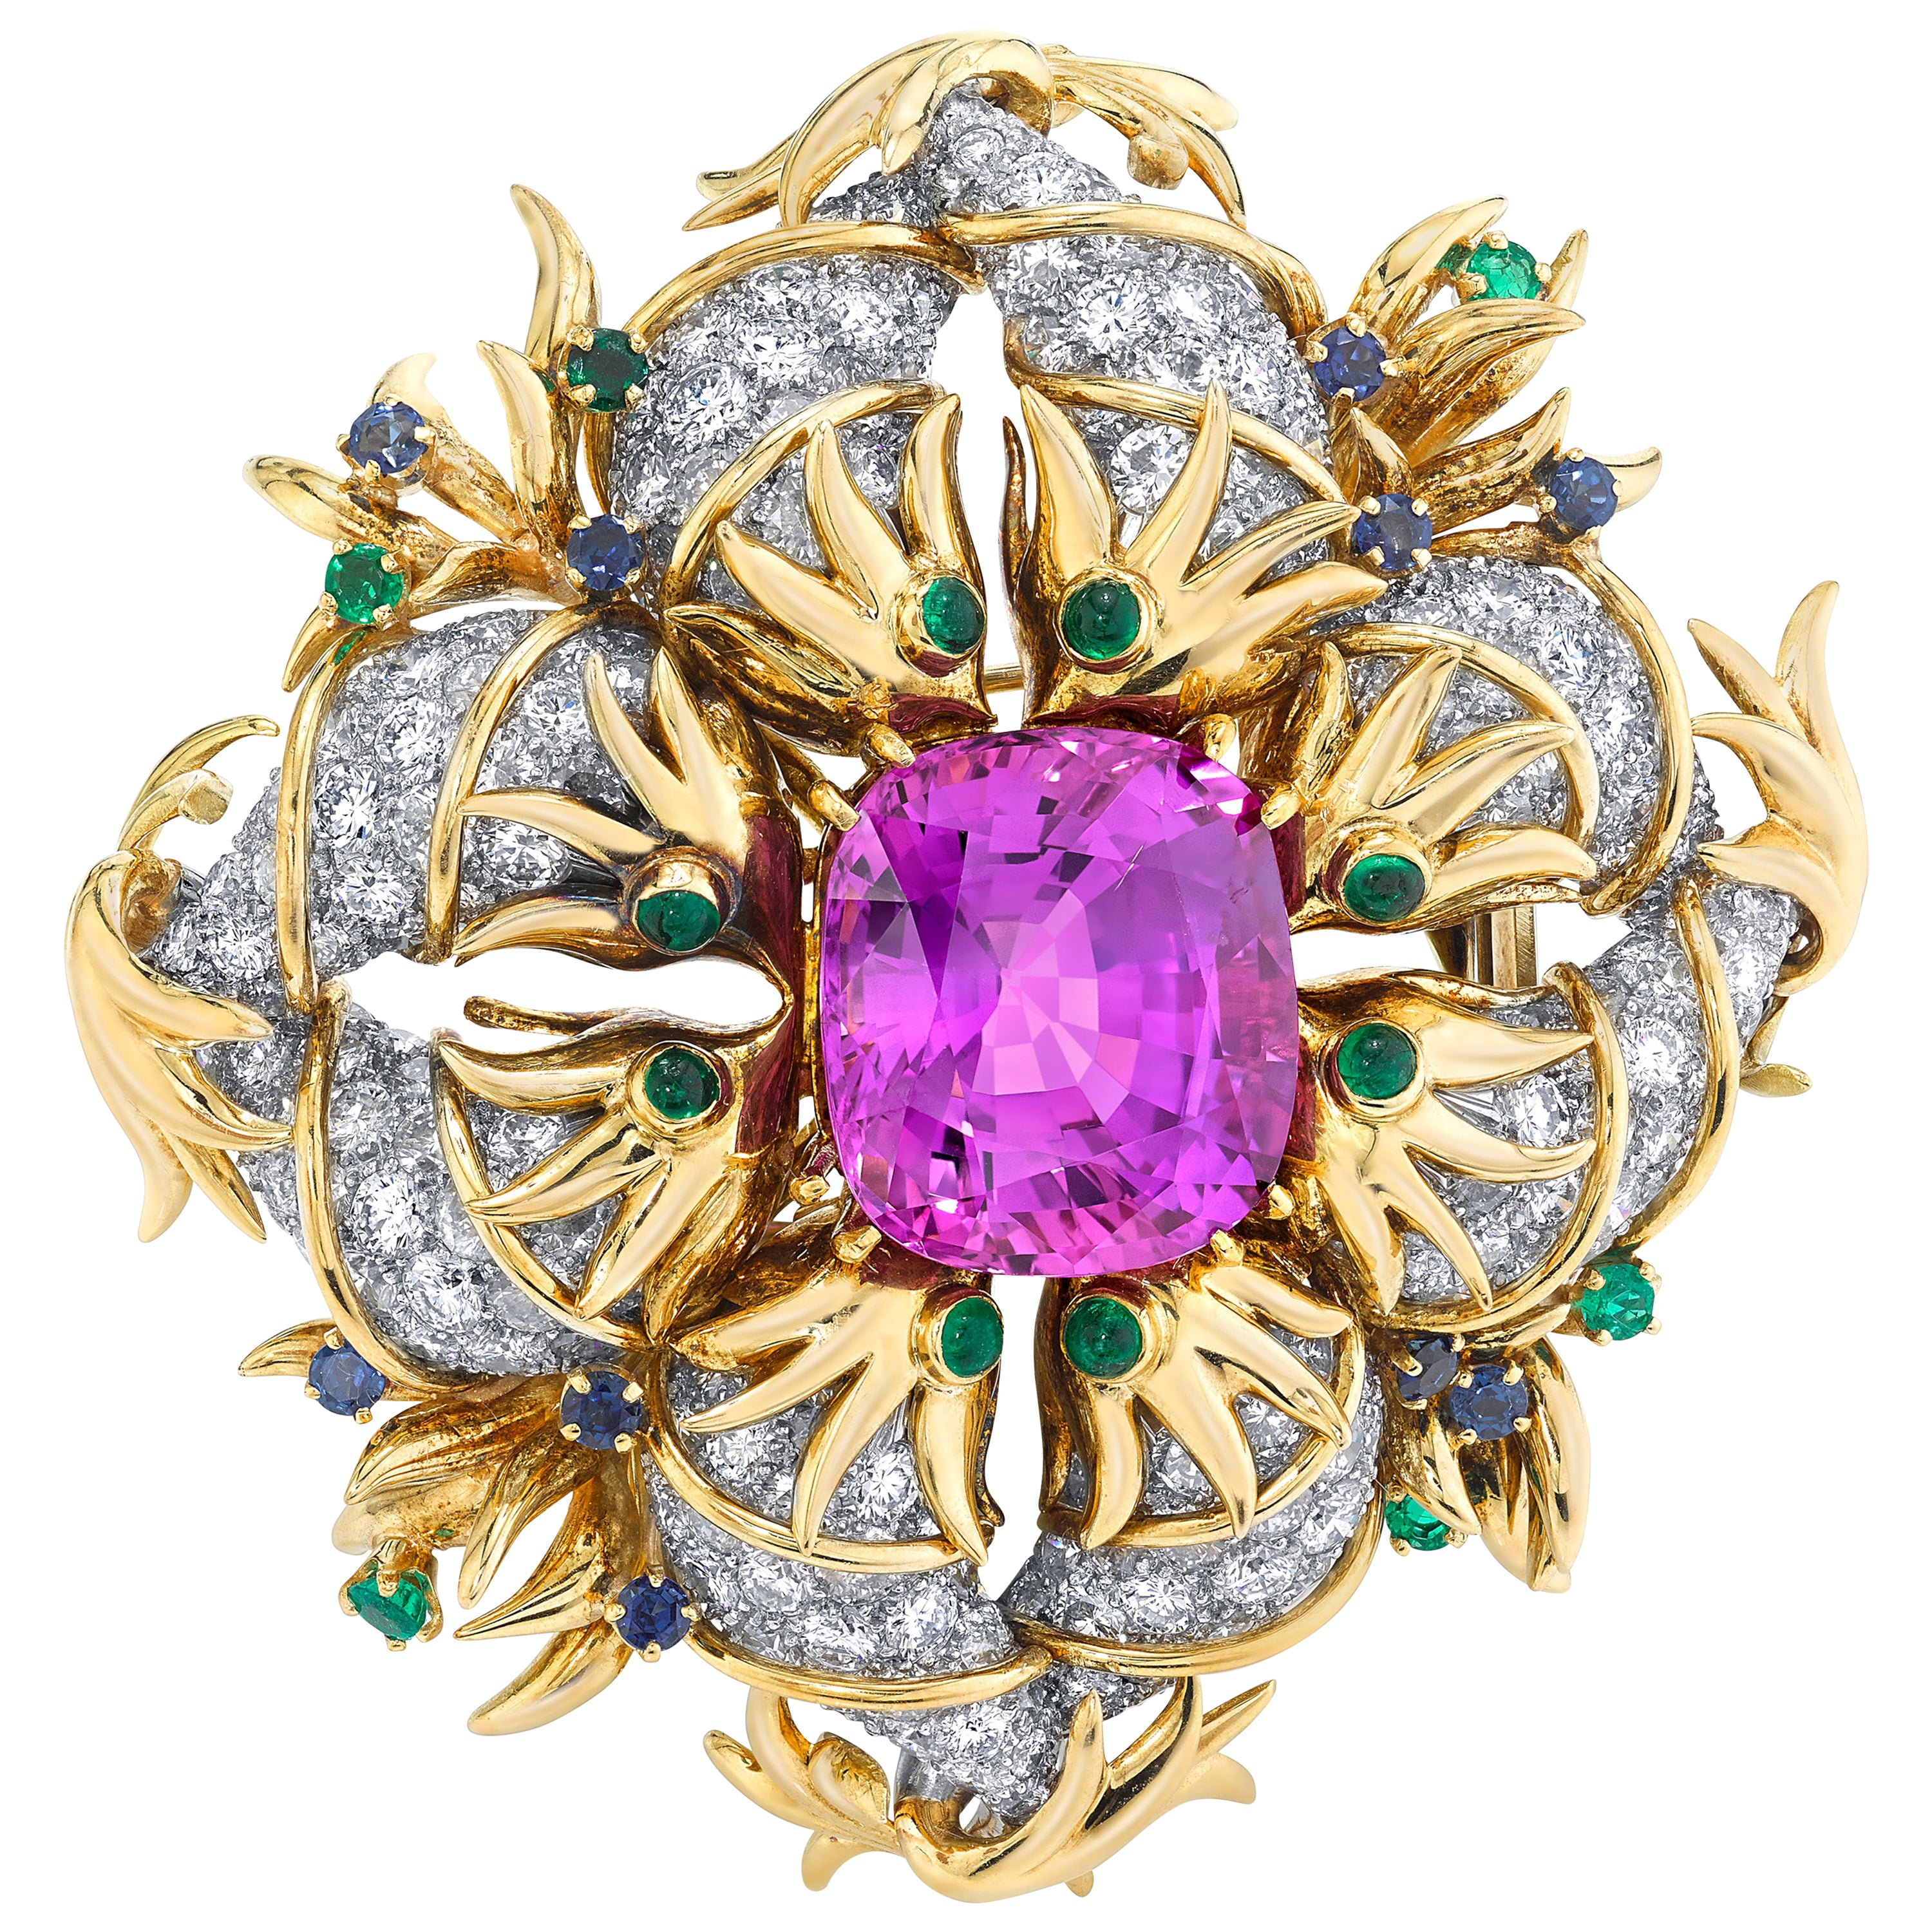 Tiffany & Co. by Sonia Younis, 21.49 Carat Pink Sapphire 18k and Platinum Brooch